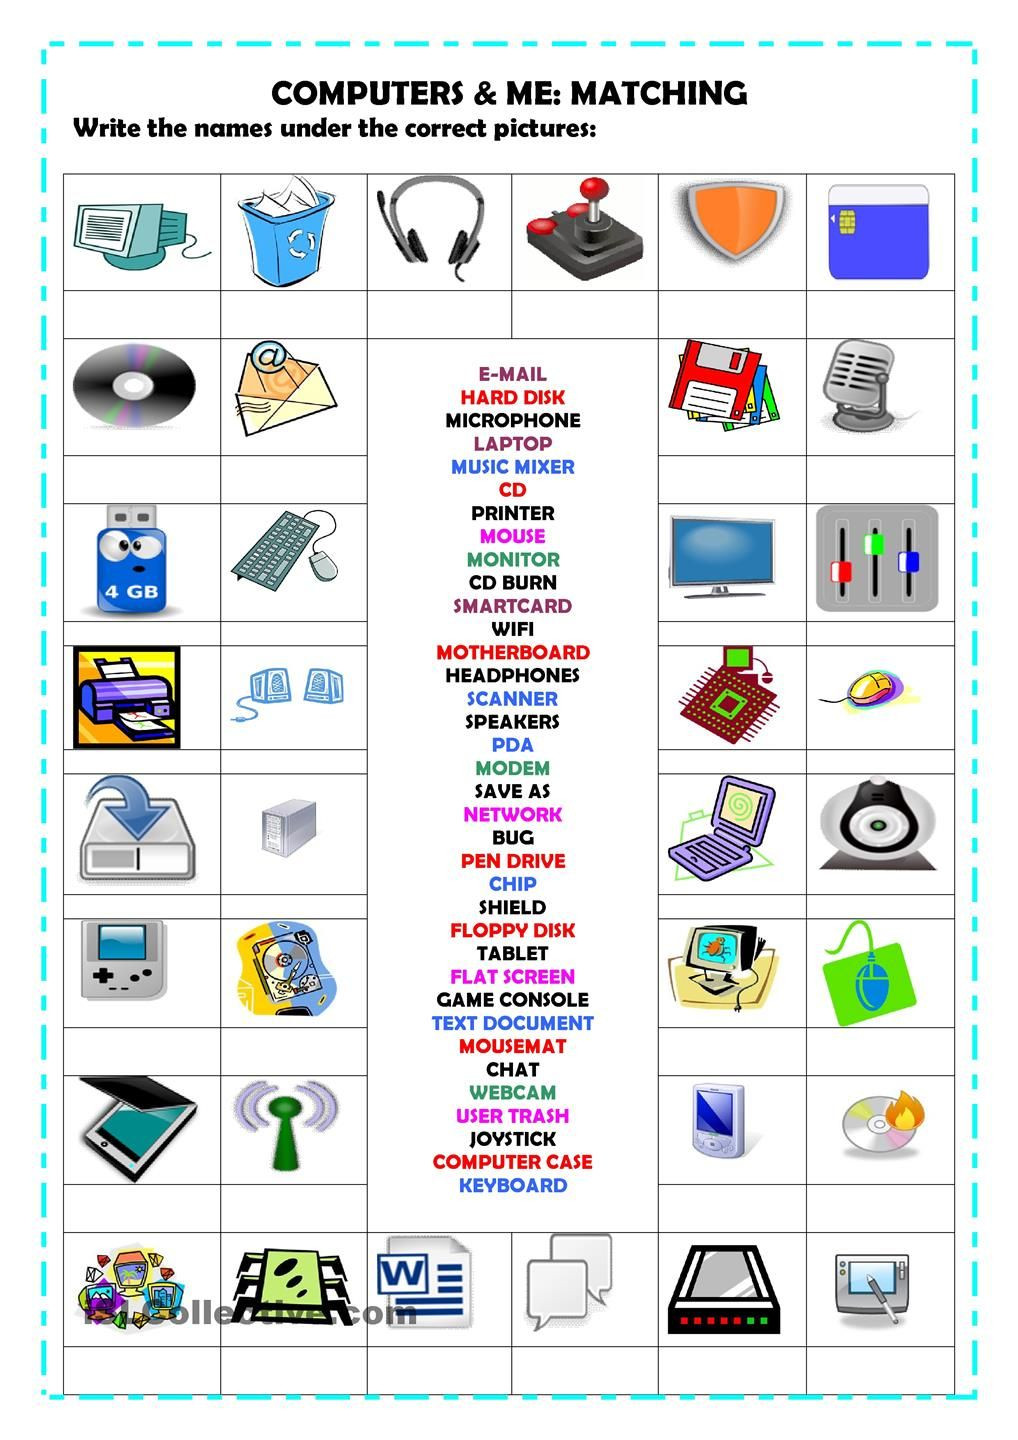 Free Printable Computer Keyboarding Worksheets Puters Matching